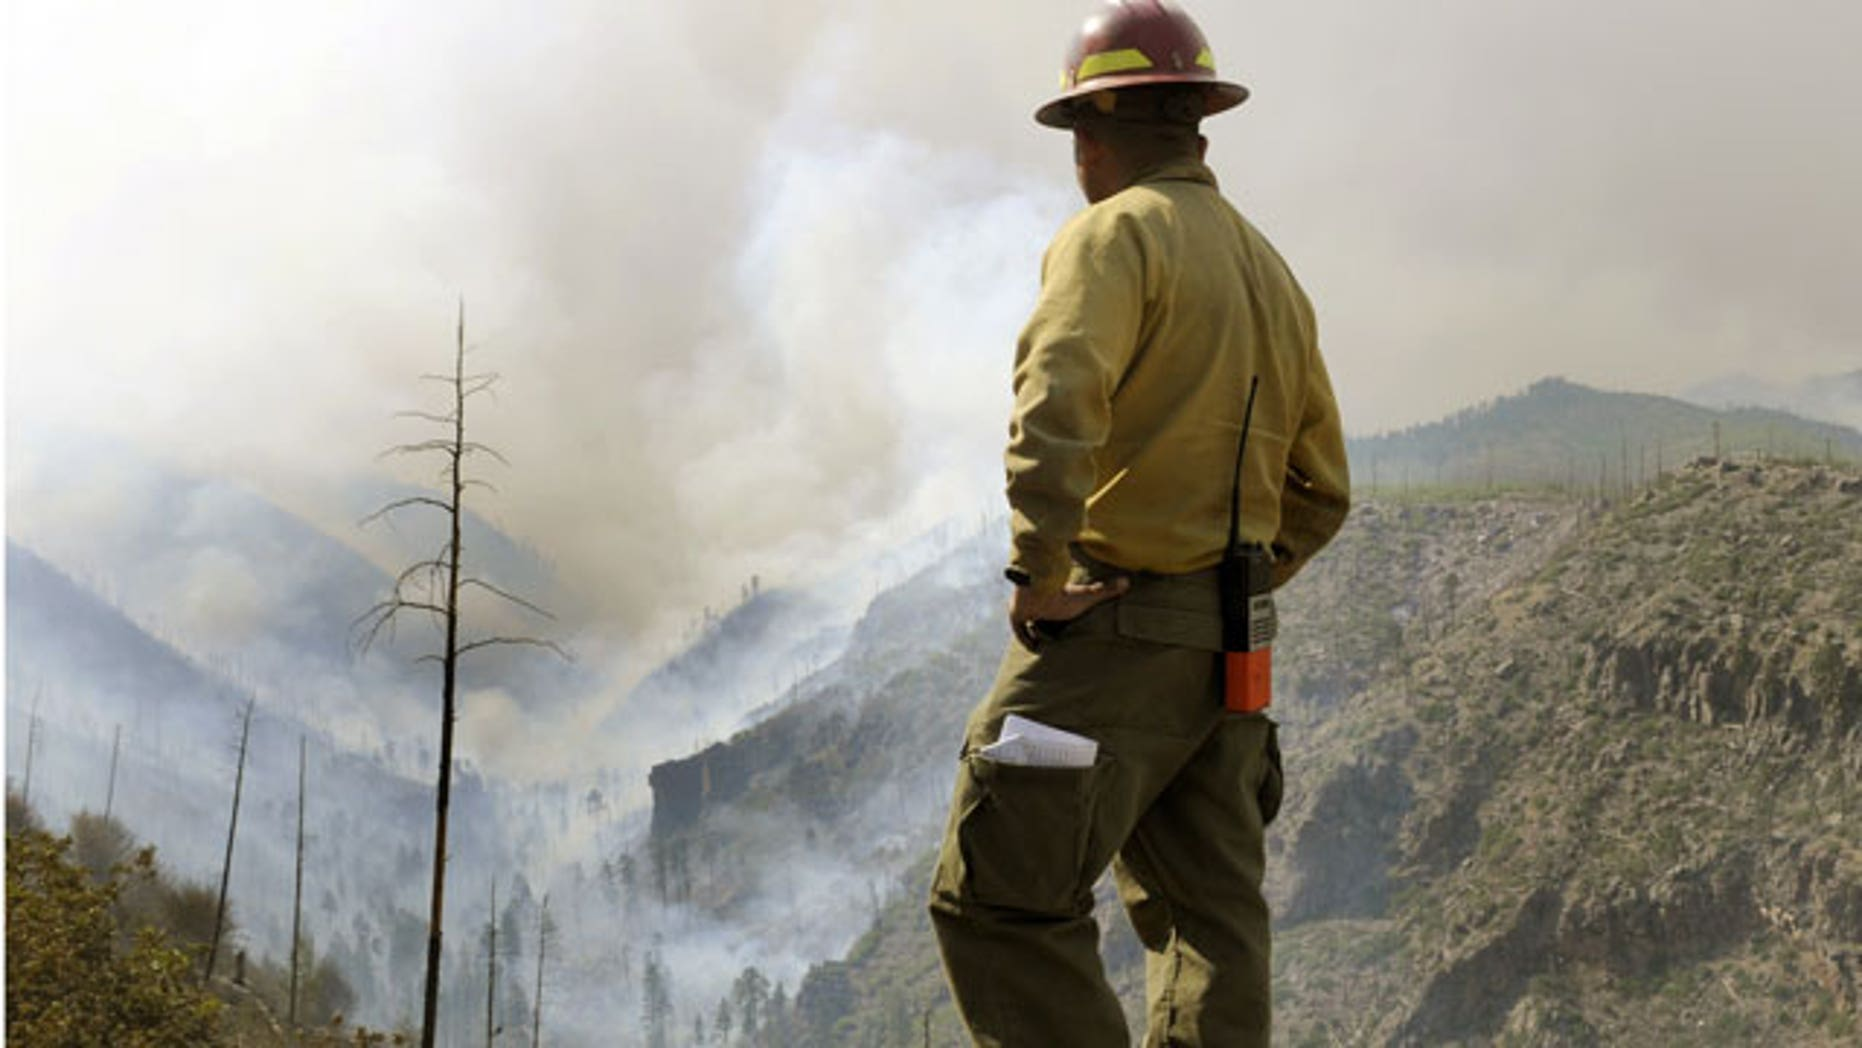 Firefighter Eugene Pino stands high above a smoke filled Los Alamos Canyon, Friday July 1, 2011 near Los Alamos, N.M.